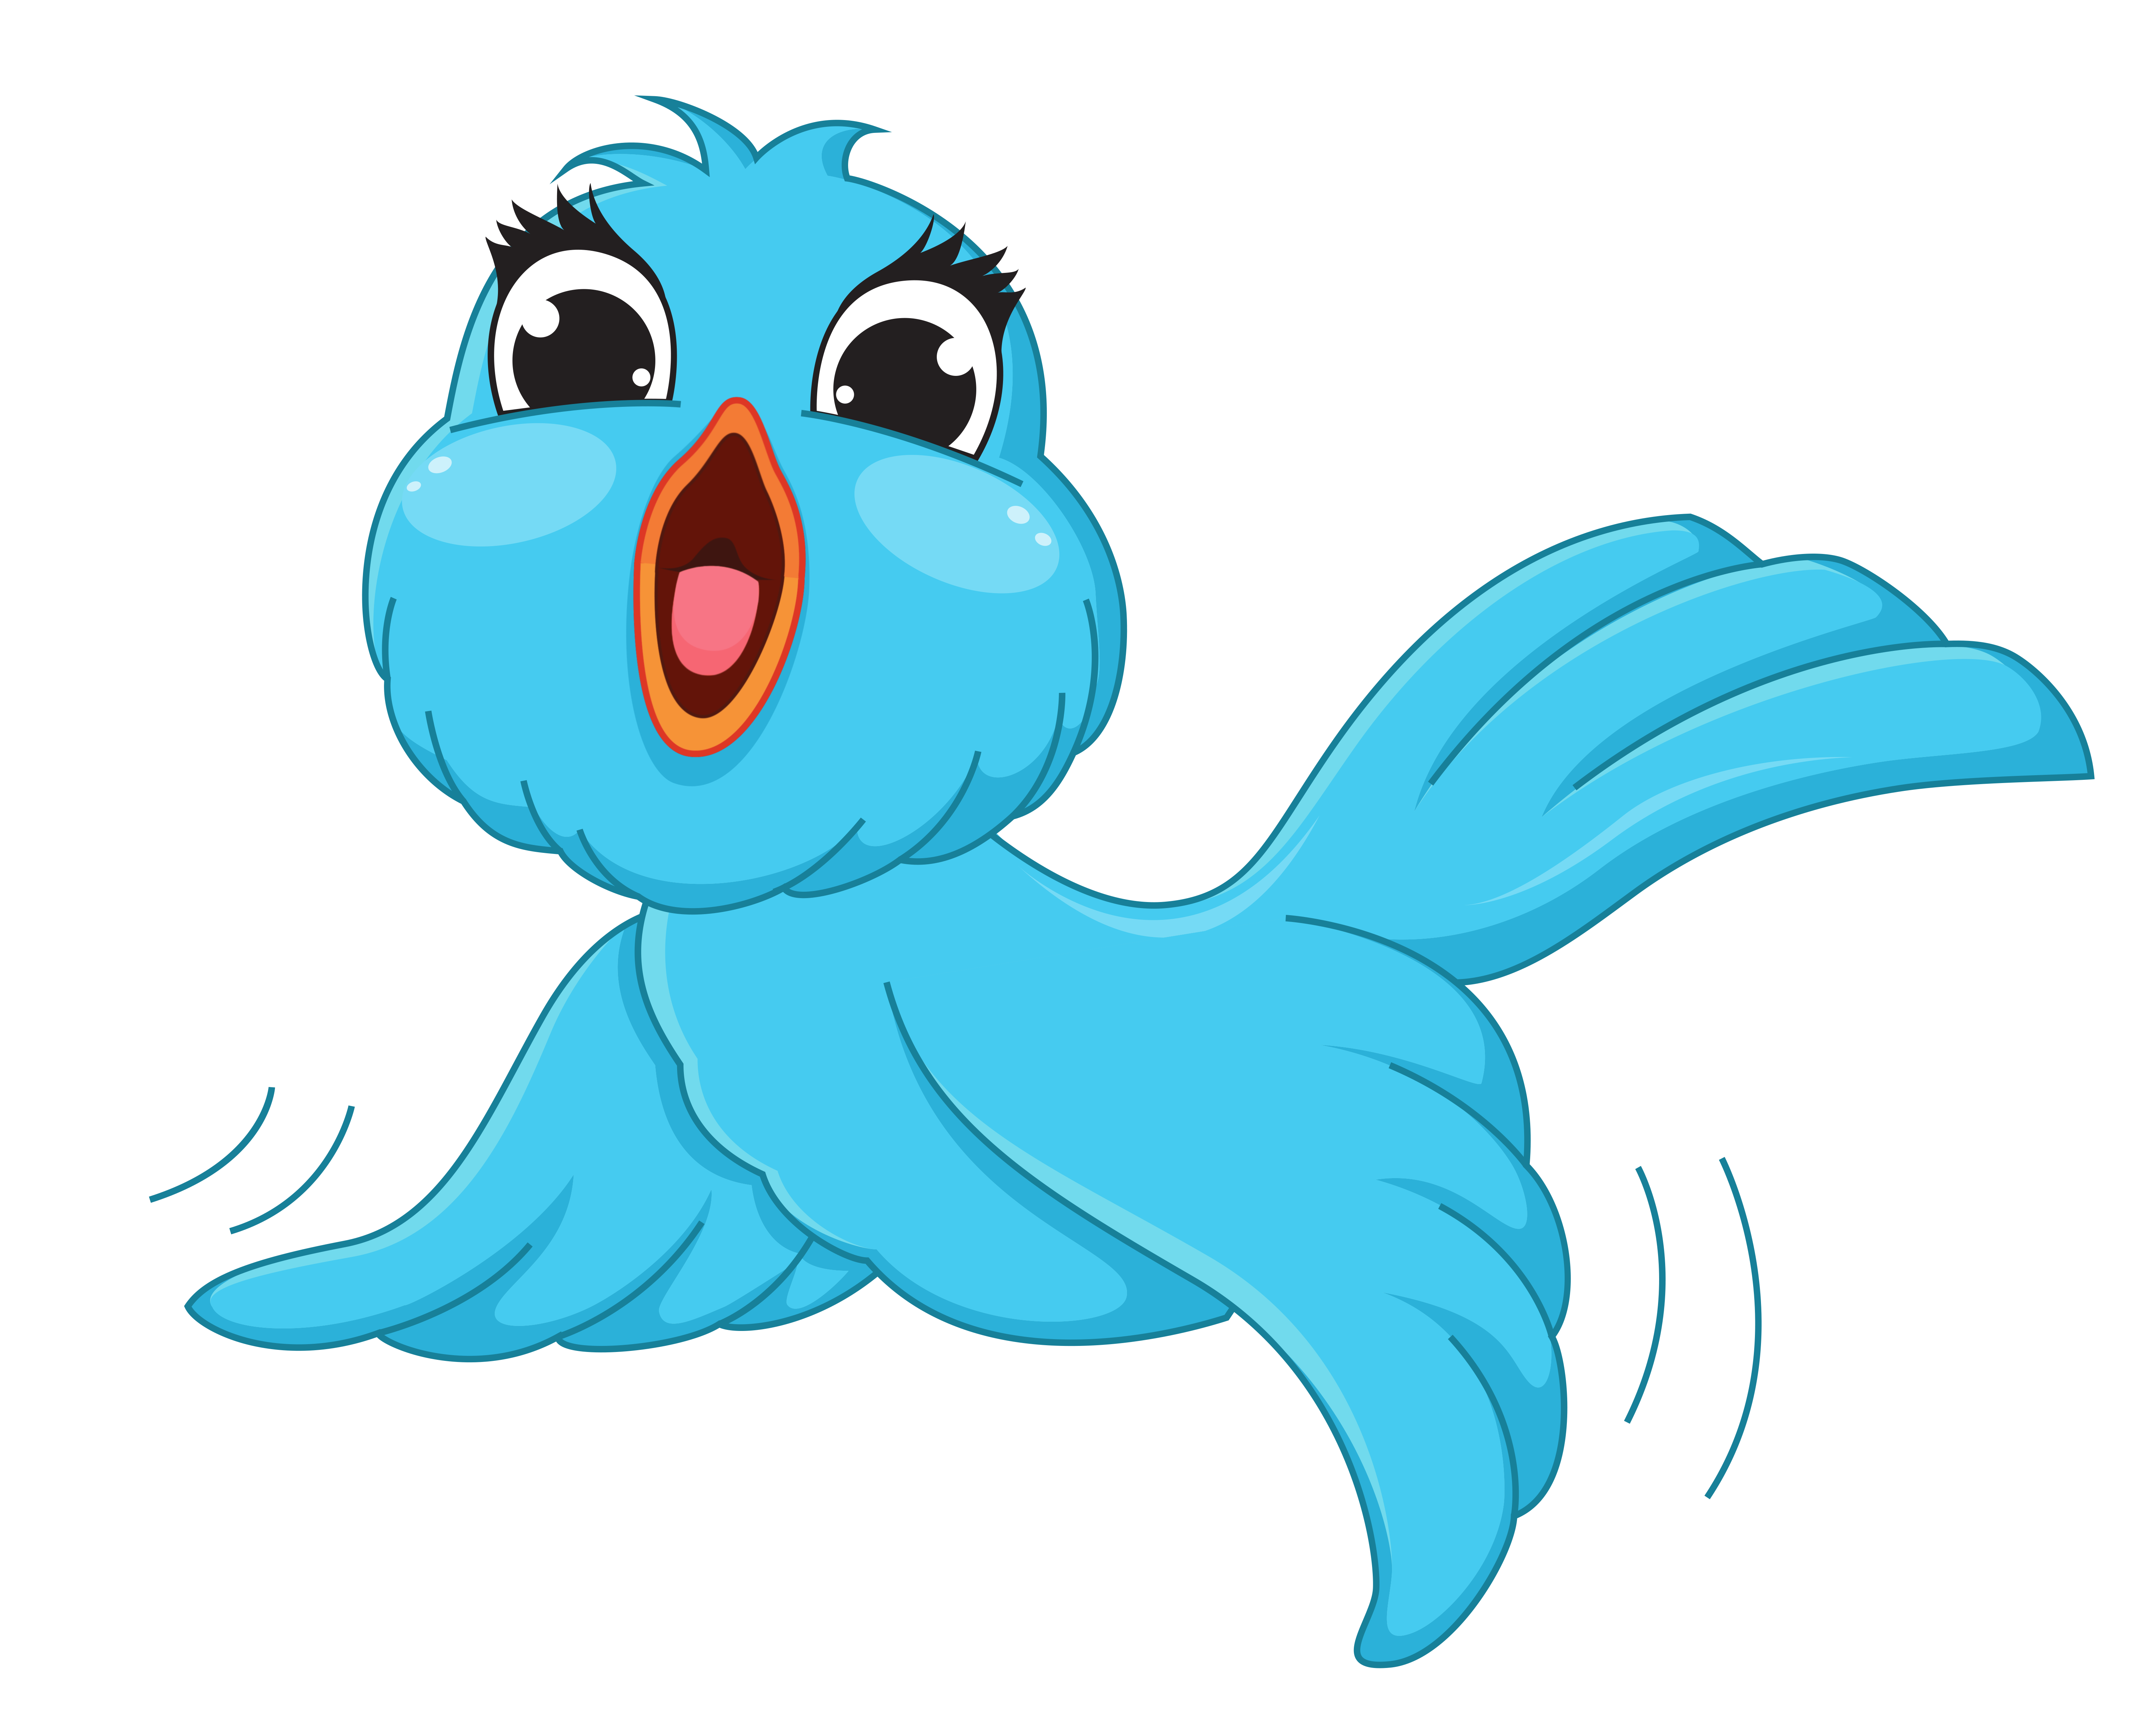 ... Cartoon Bird Clipart; Transparent Bl-... Cartoon Bird Clipart; Transparent Blue Bird PNG Cartoon Picture ...-6